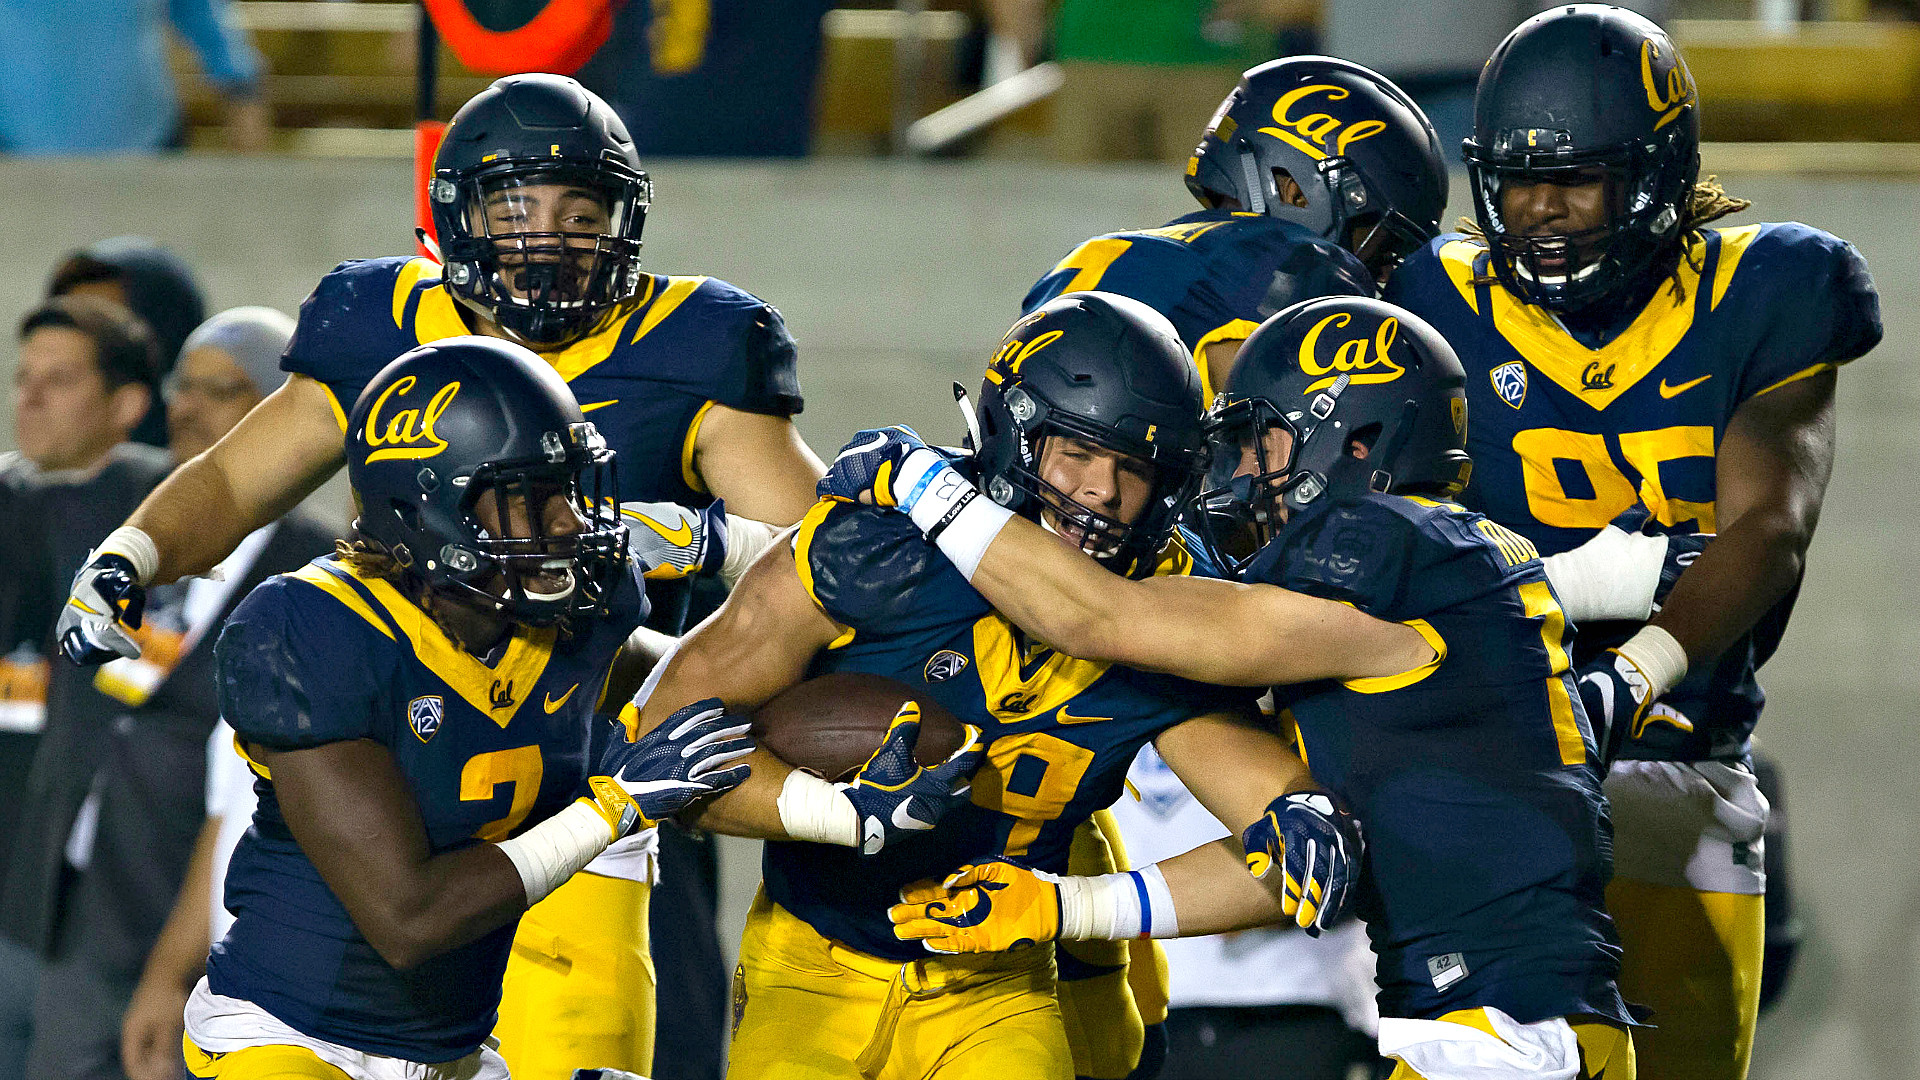 1920x1080 UCLA vs. Cal prediction and game preview. Projecting who wins Saturday  night's matchup between the Bruins and Golden Bears.